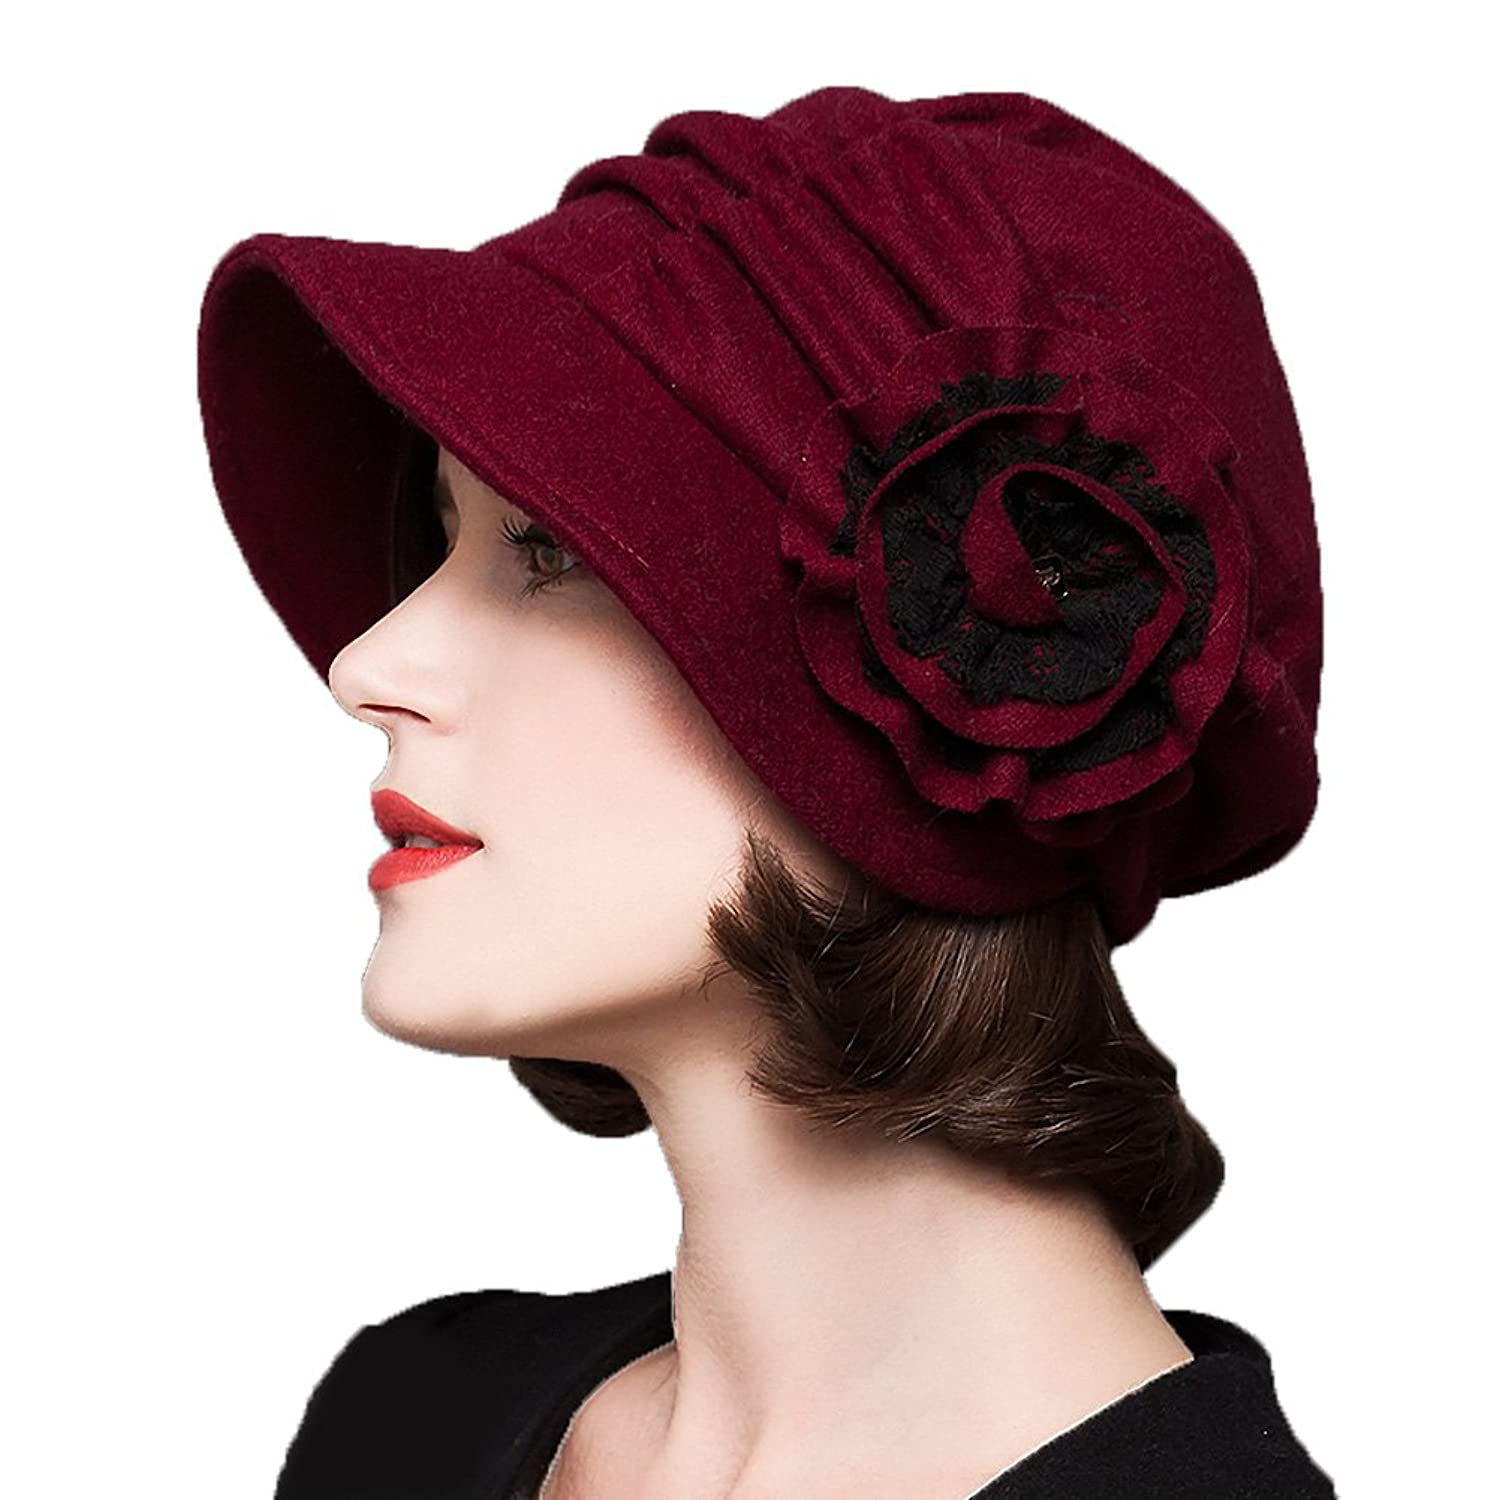 Vintage Inspired Halloween Costumes  Decorative Flowers Wool Beret $28.40 AT vintagedancer.com